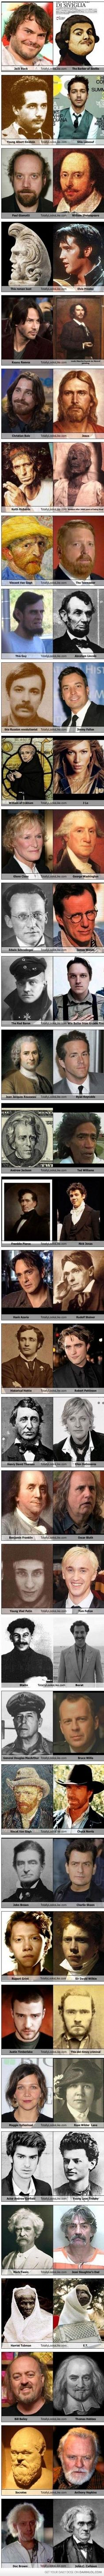 wow! Reincarnation much?? when celebs look like people from history.....: